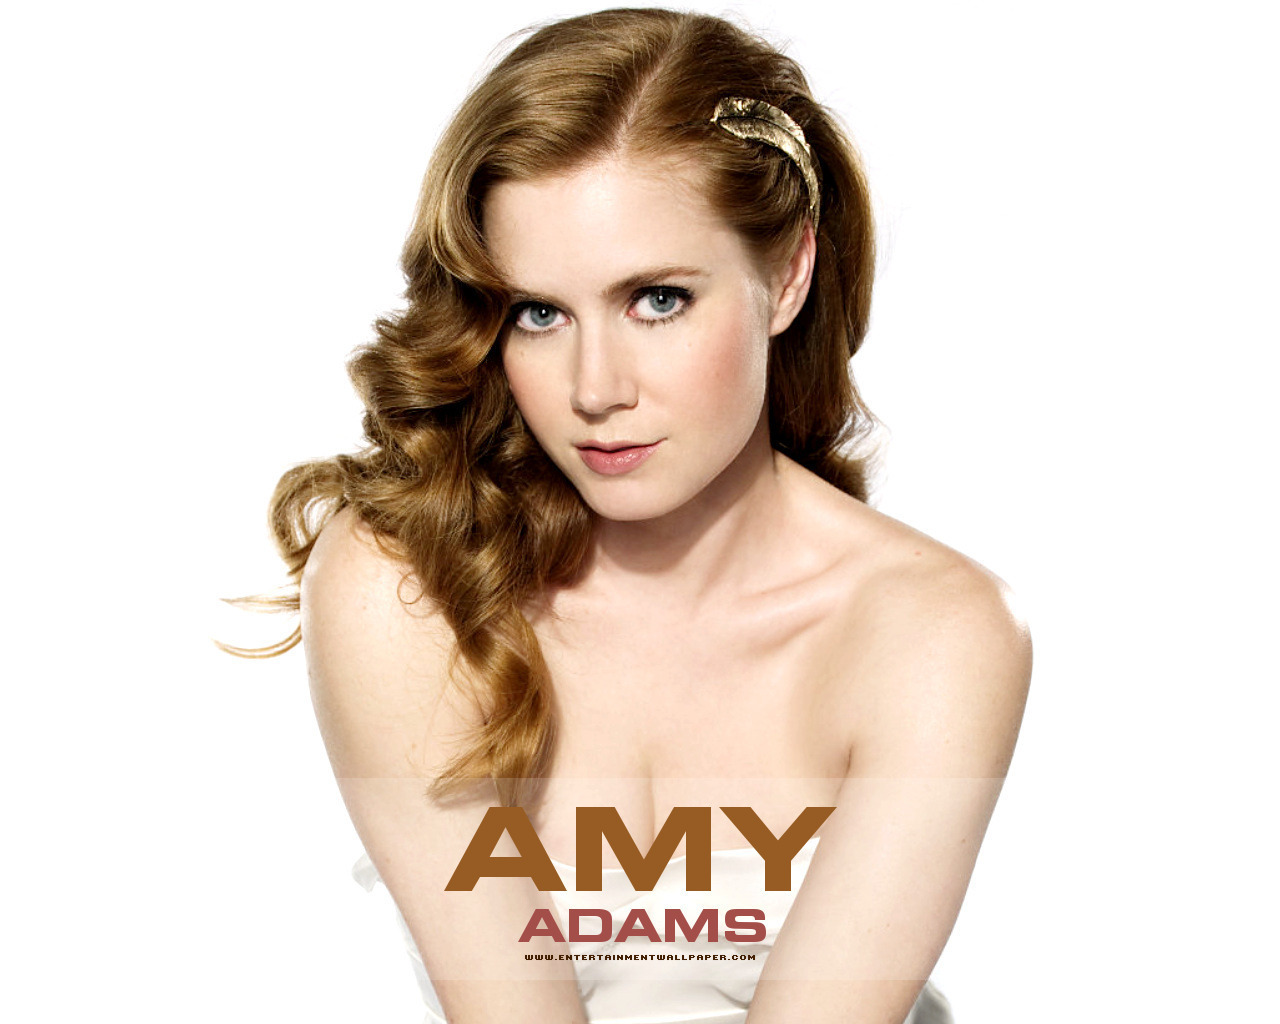 Amy Adams image Amy Adams HD wallpapers and backgrounds photos